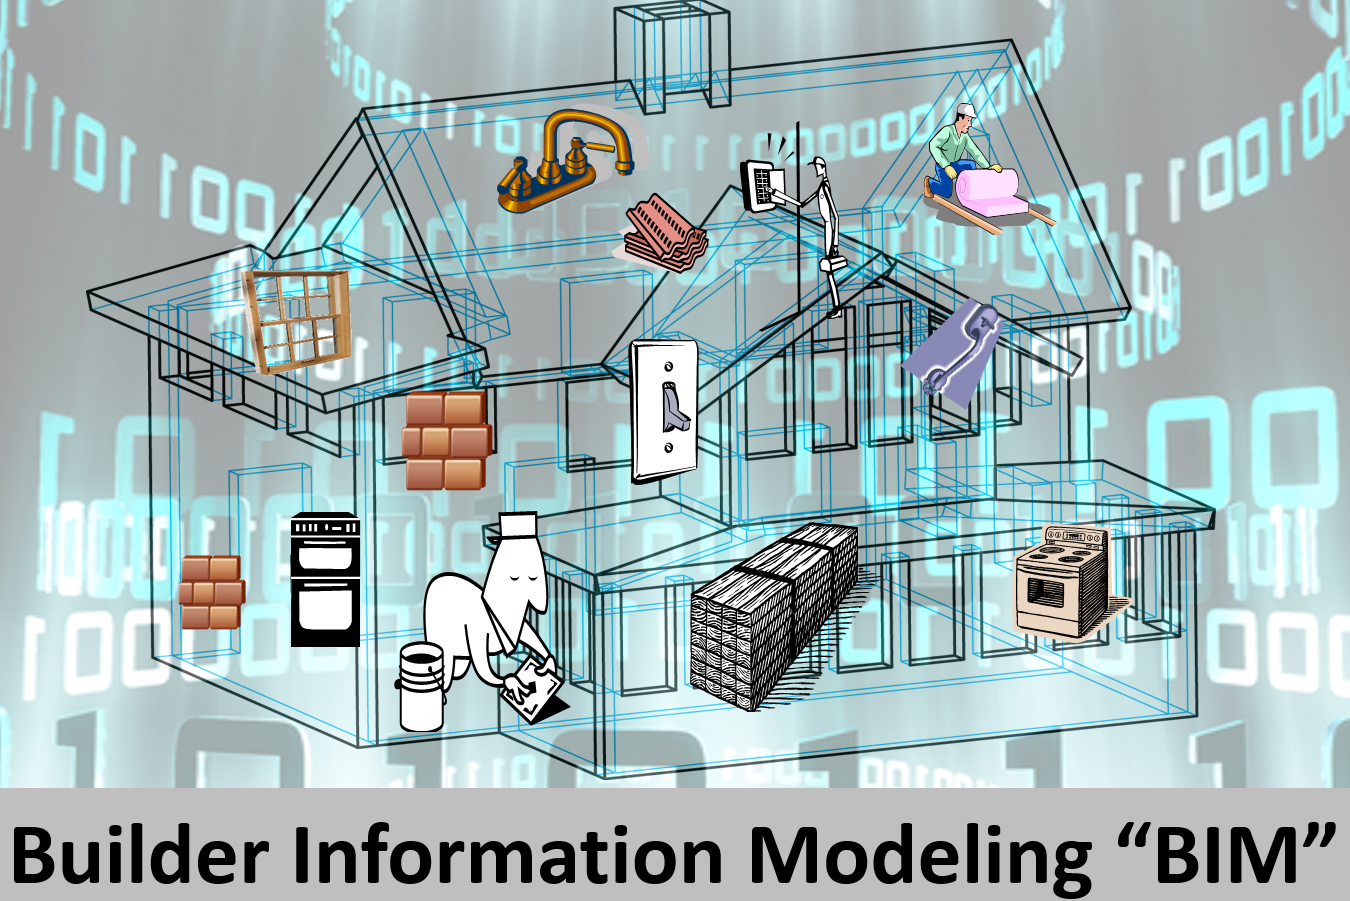 cad with embedded intelligence